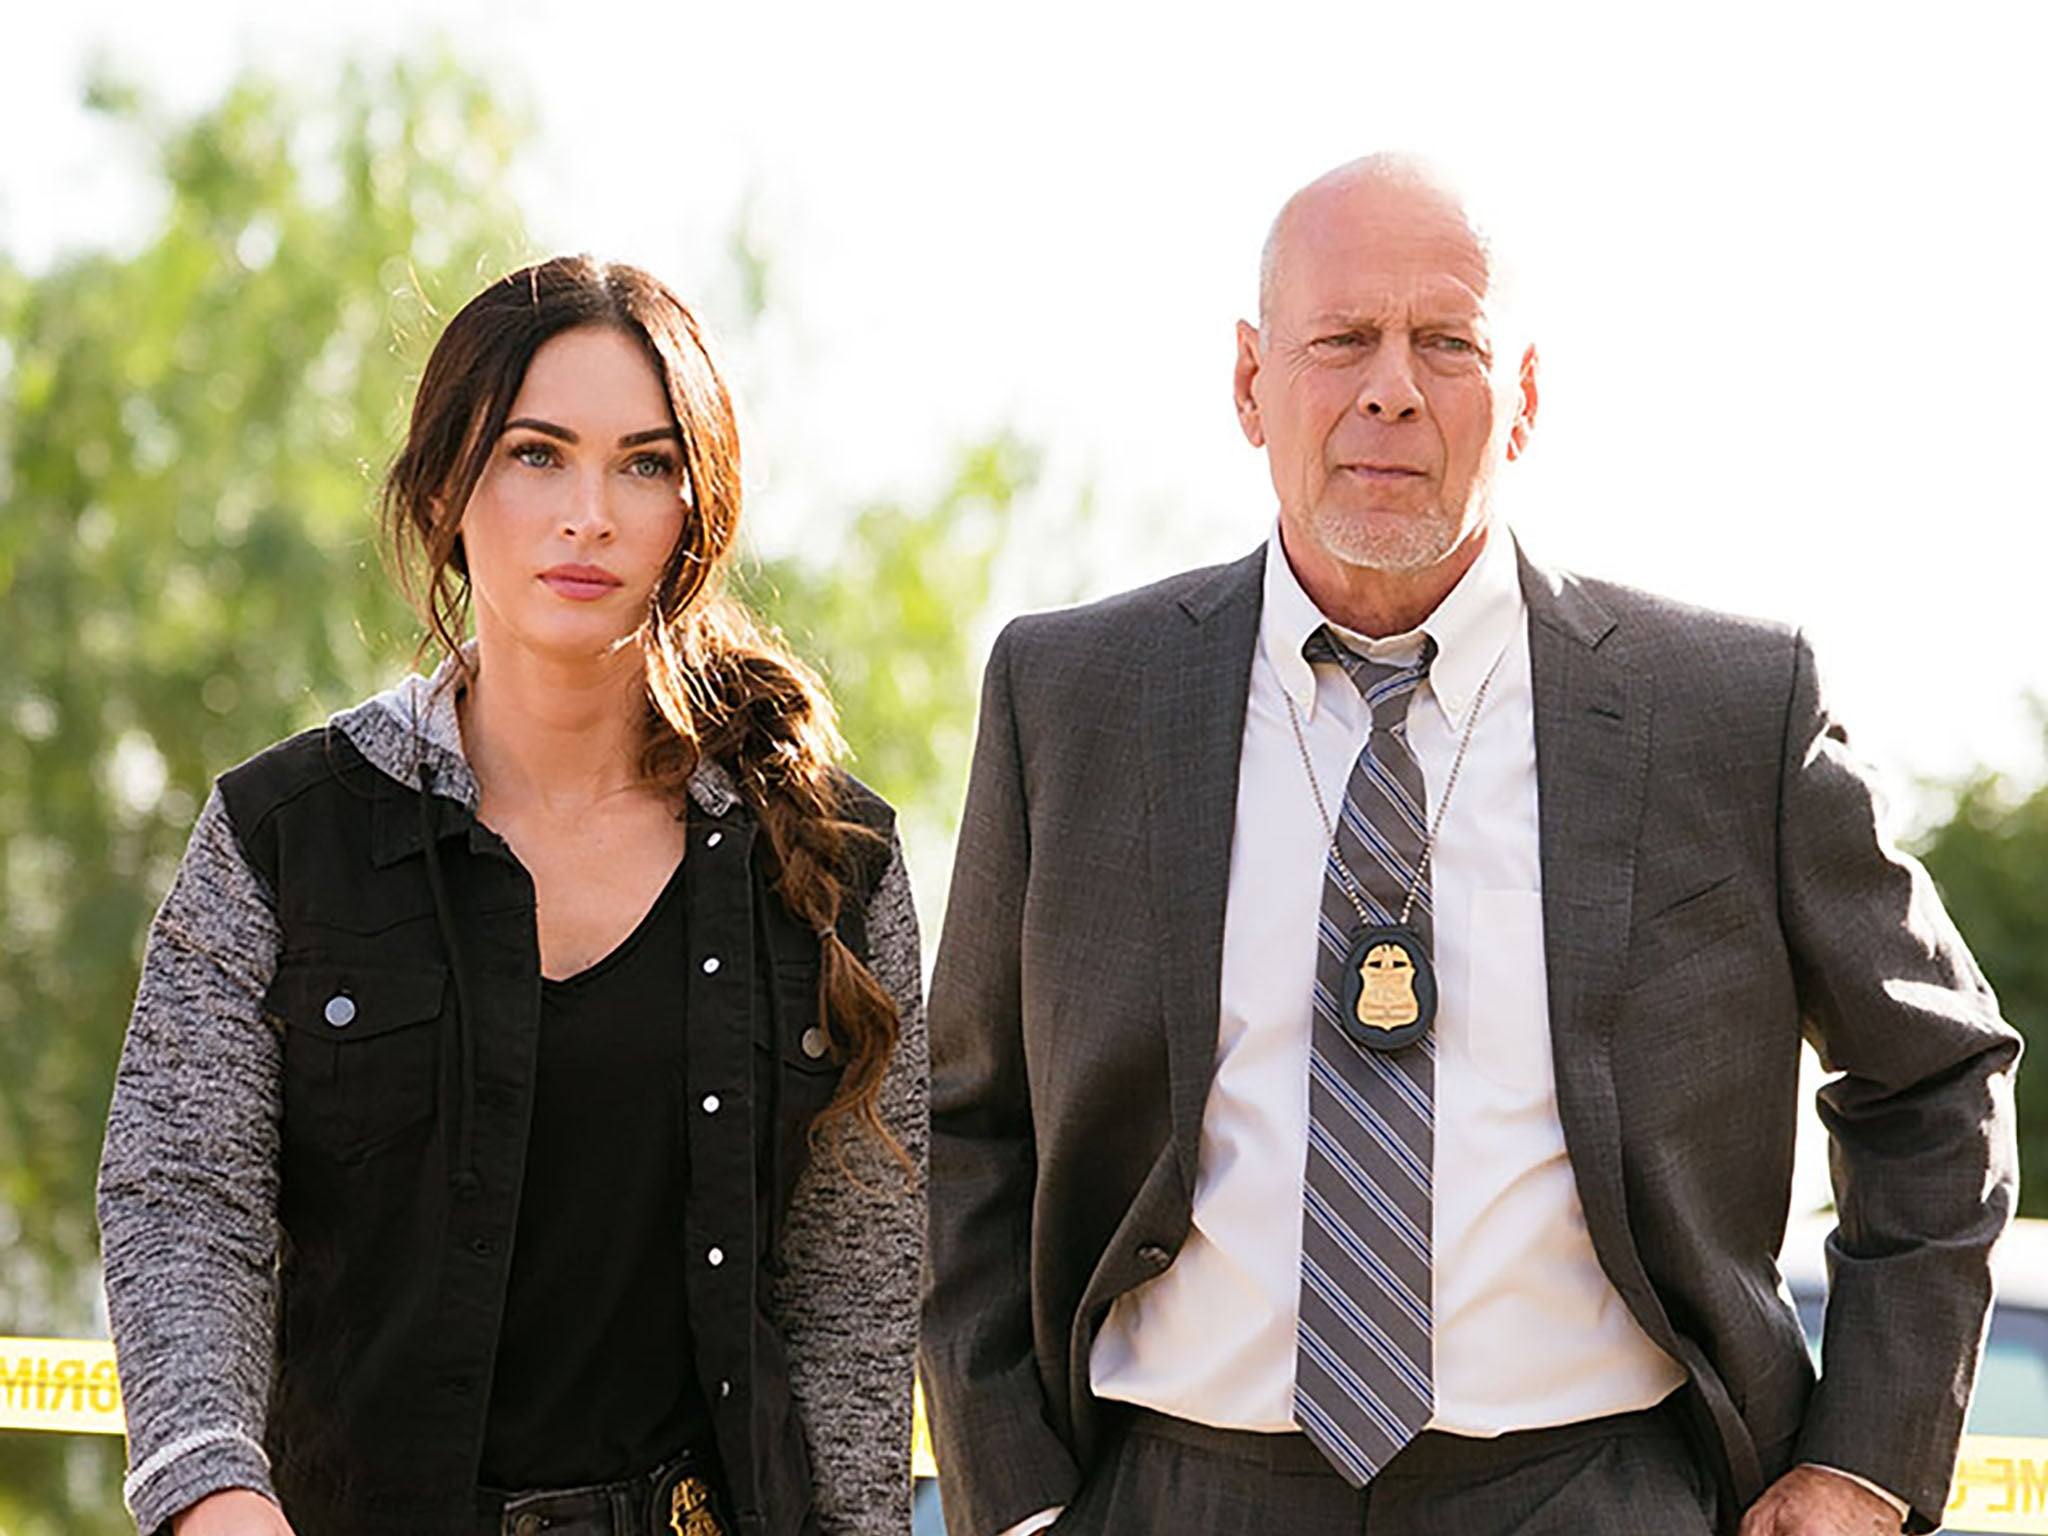 independent.co.uk - Adam White - Bruce Willis mocked over 'astonishingly embarrassing' performance in Megan Fox film